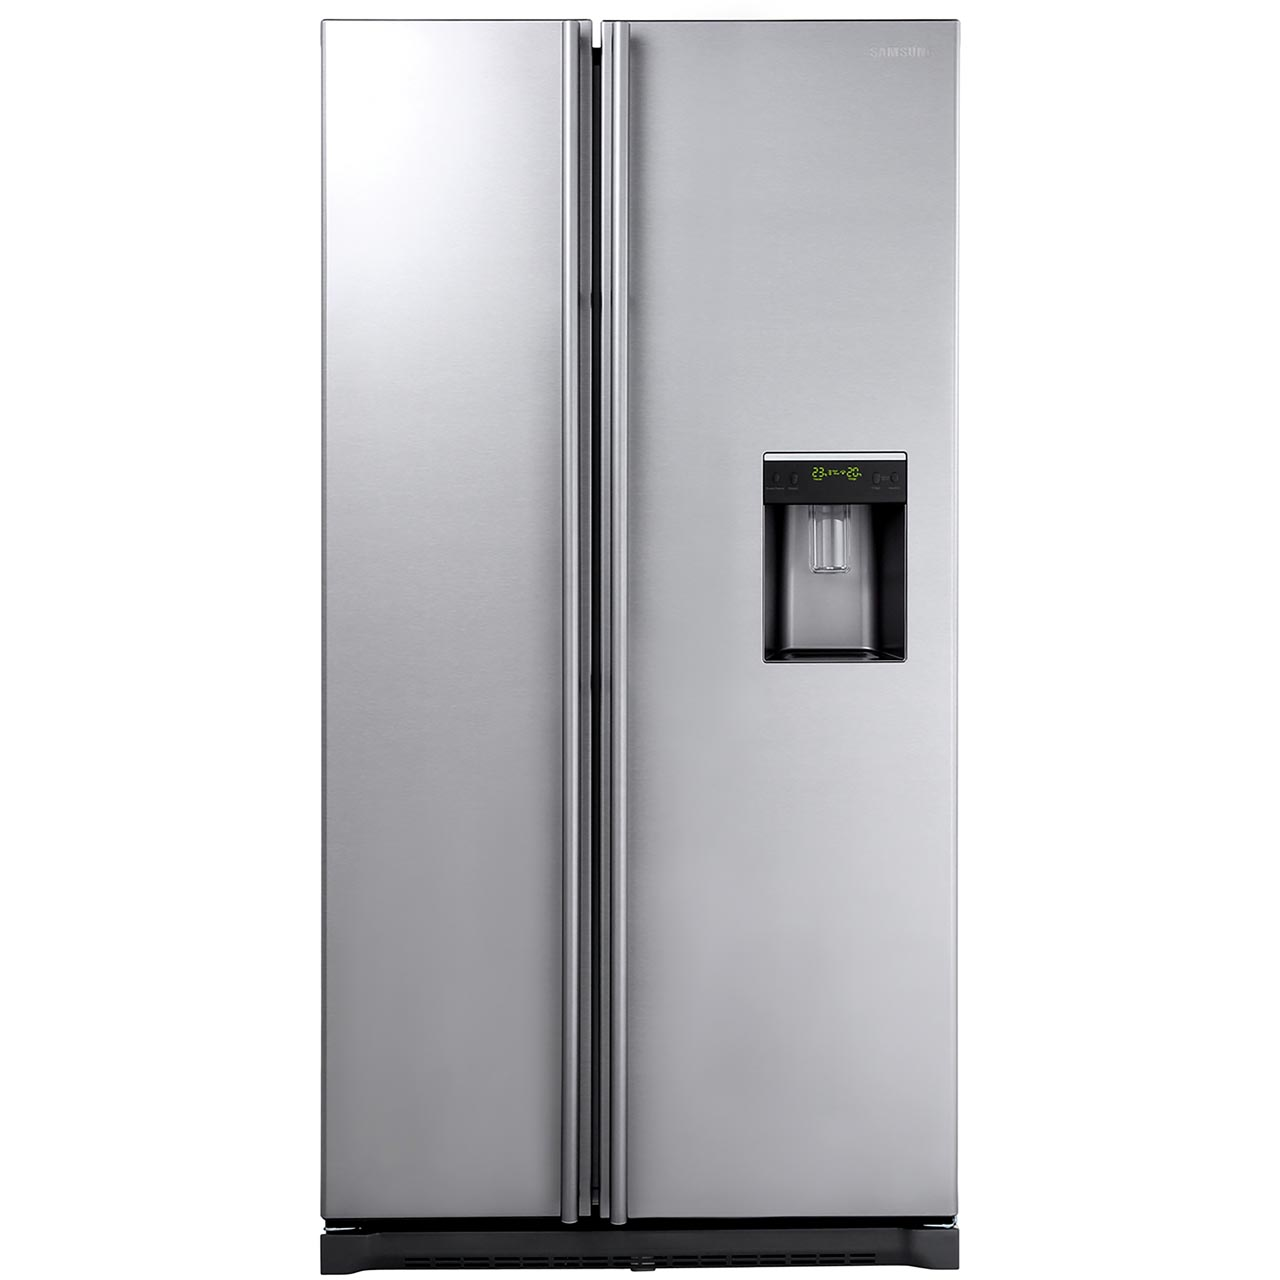 Samsung ASeries RSA1RTMG Free Standing American Fridge Freezer in Gun Metal